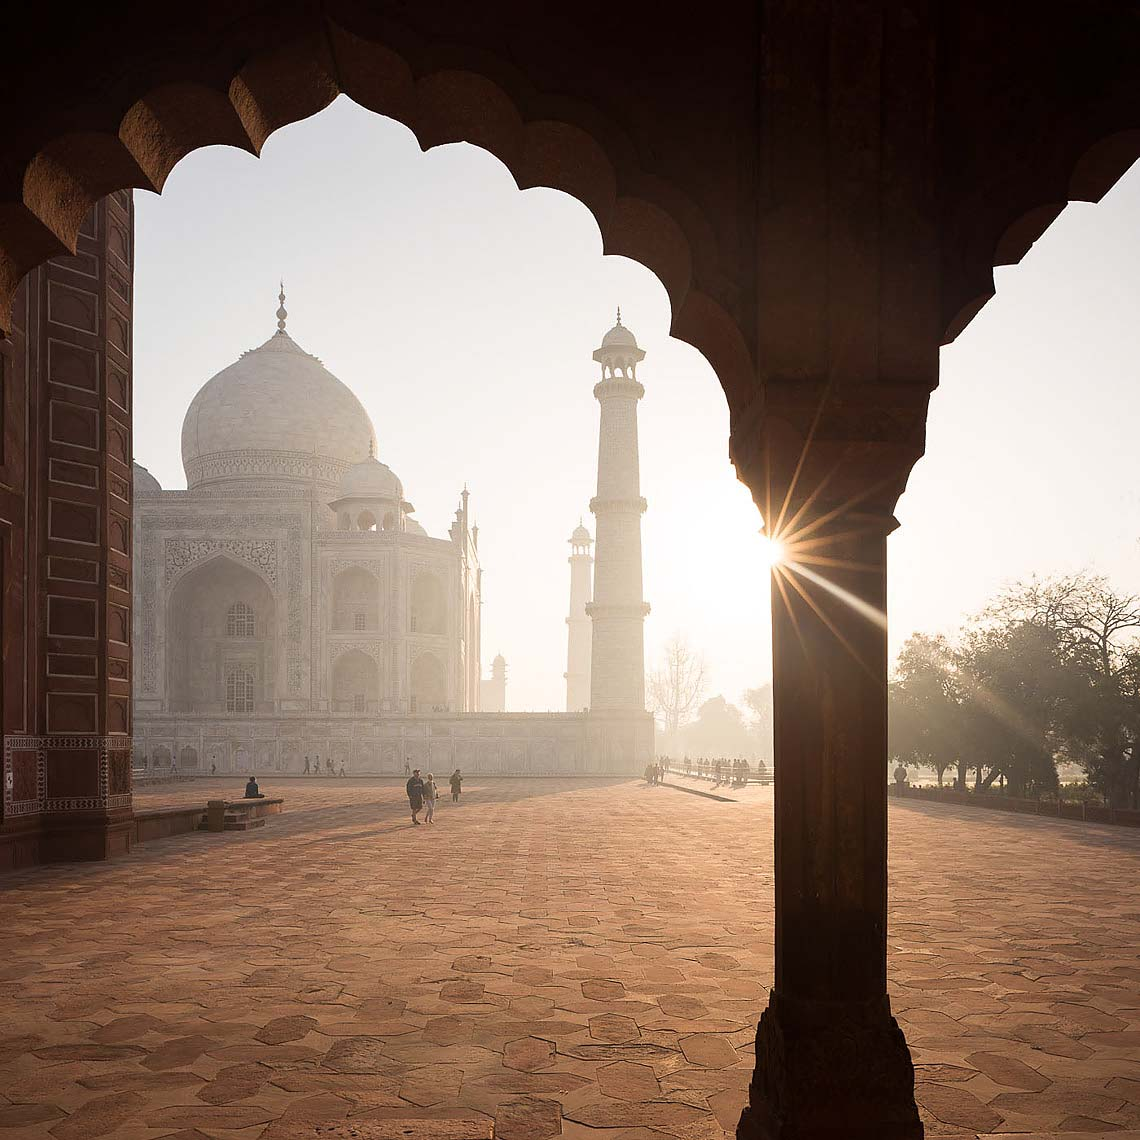 dawn-architecture-taj-mahal-agra-india-travel-02